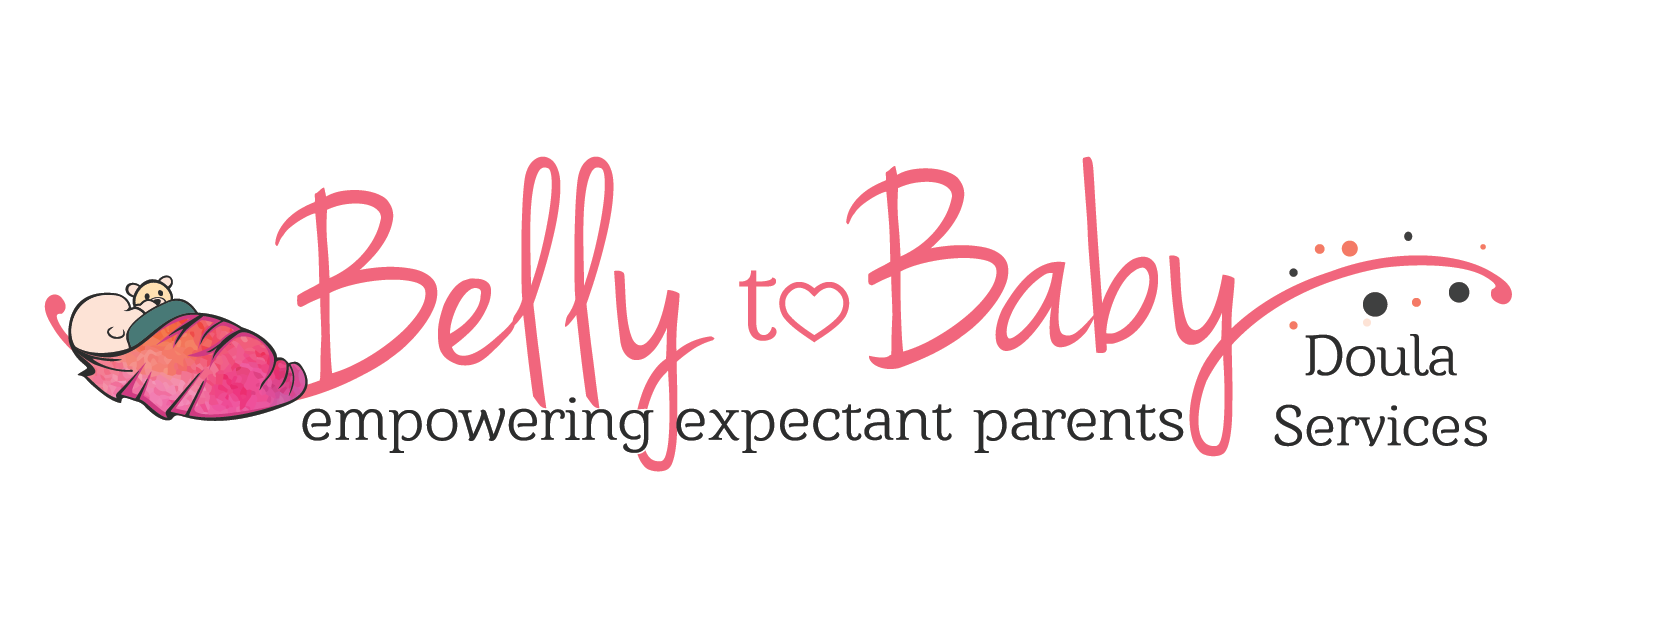 """Create a beautiful logo for """"baby"""" business - Belly to Baby!"""